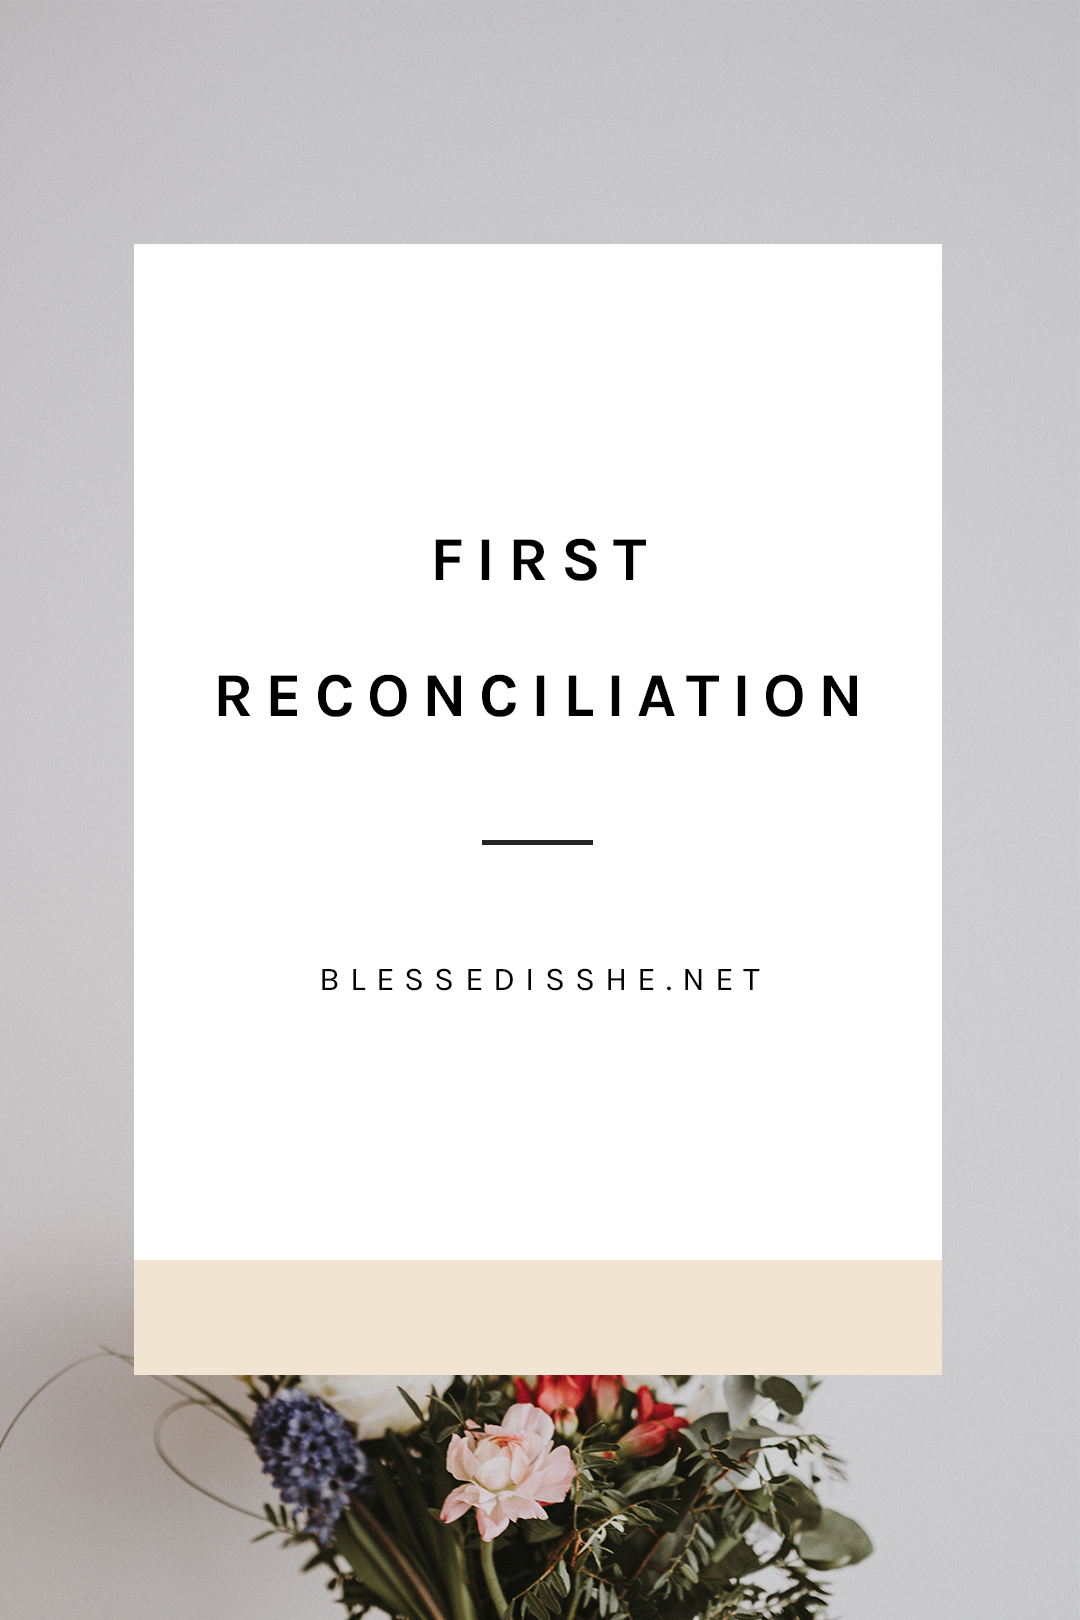 first-reconciliation-poem.jpg